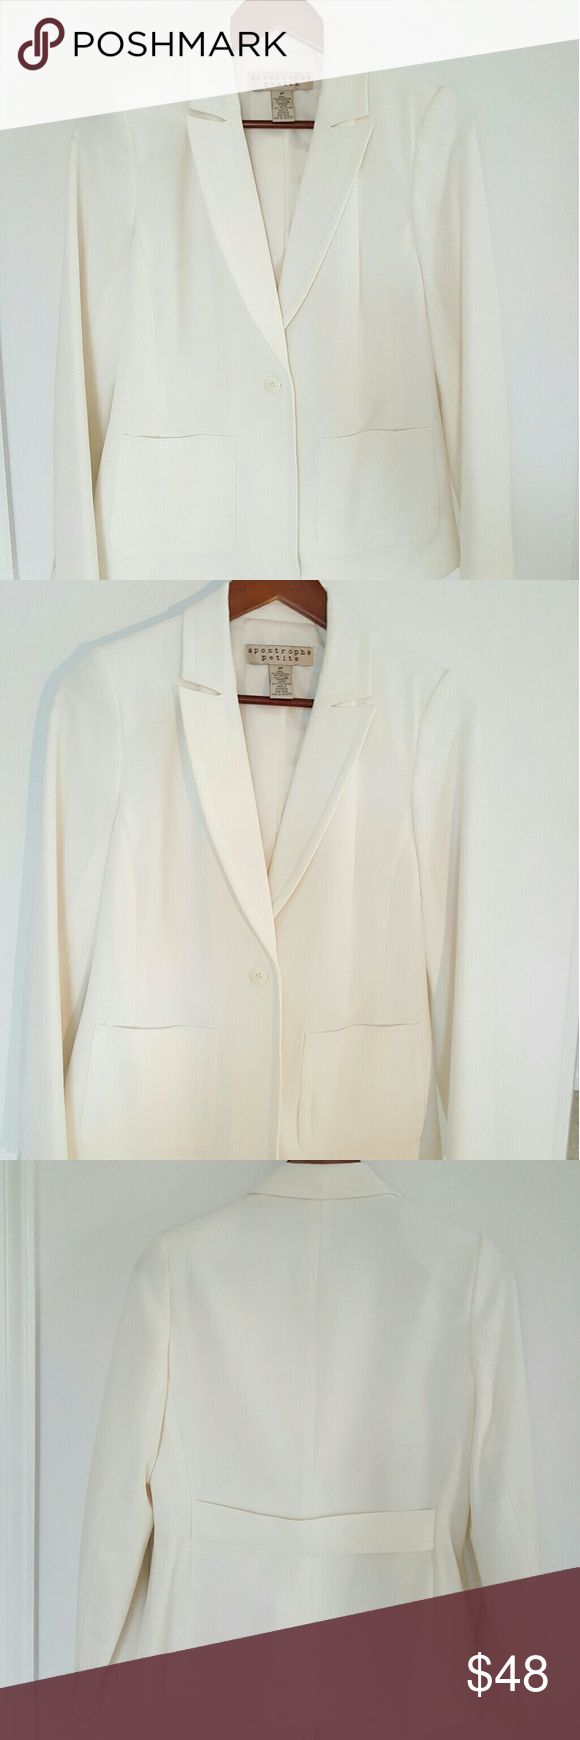 Apostrophe petite blazer Like new very classy rich in material not a cheap stuff. Color is off white Apostrophe Jackets & Coats Blazers